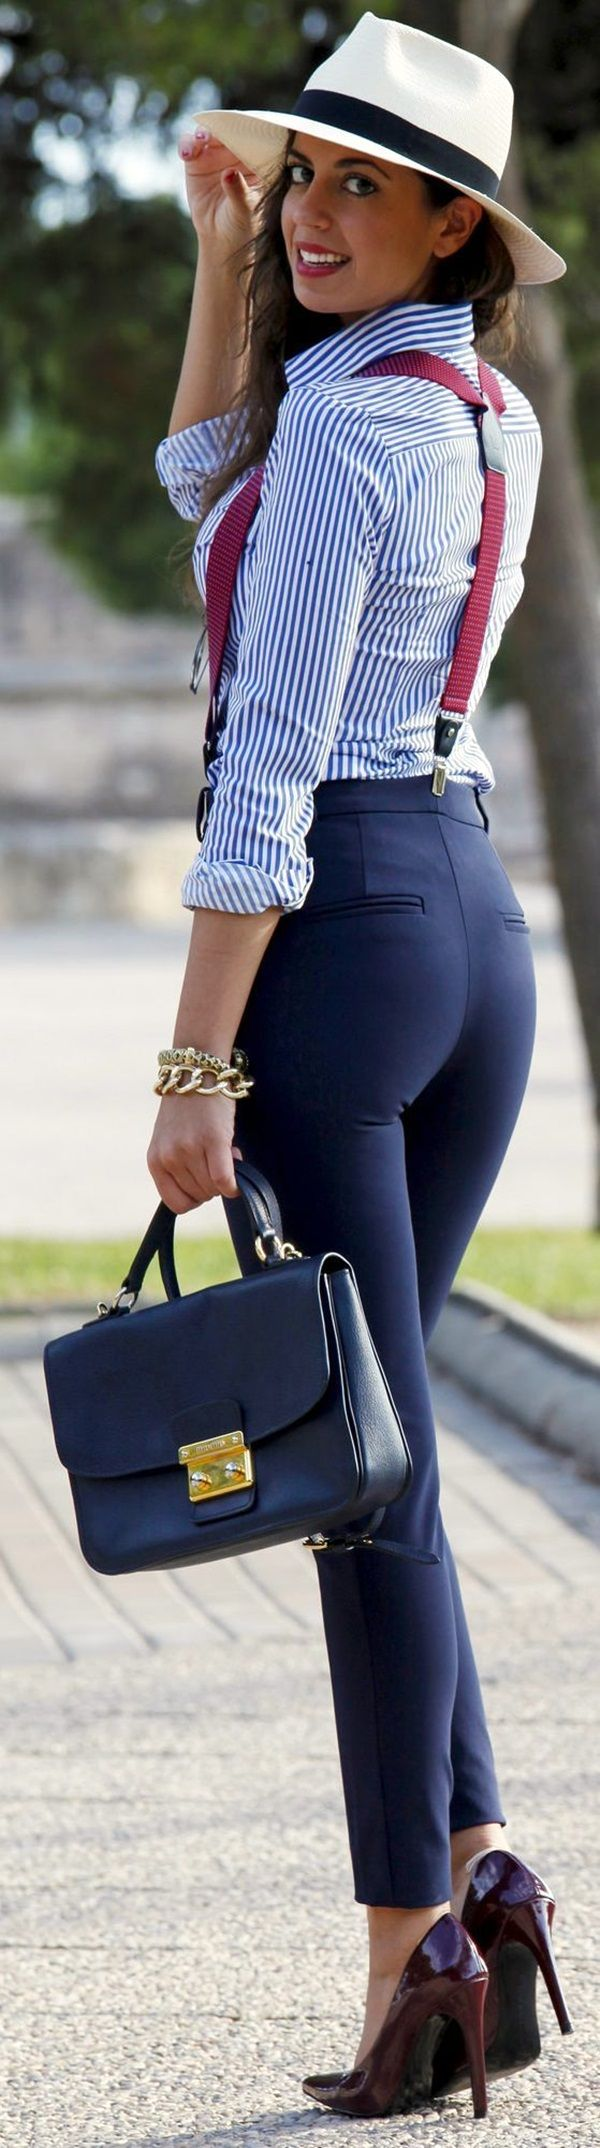 COMBINE THE SUSPENDERS WITH YOUR BUSINESS ATTIRE TO ACHIEVE THAT BOSSY LOOK ||| How to wear Suspenders in Style